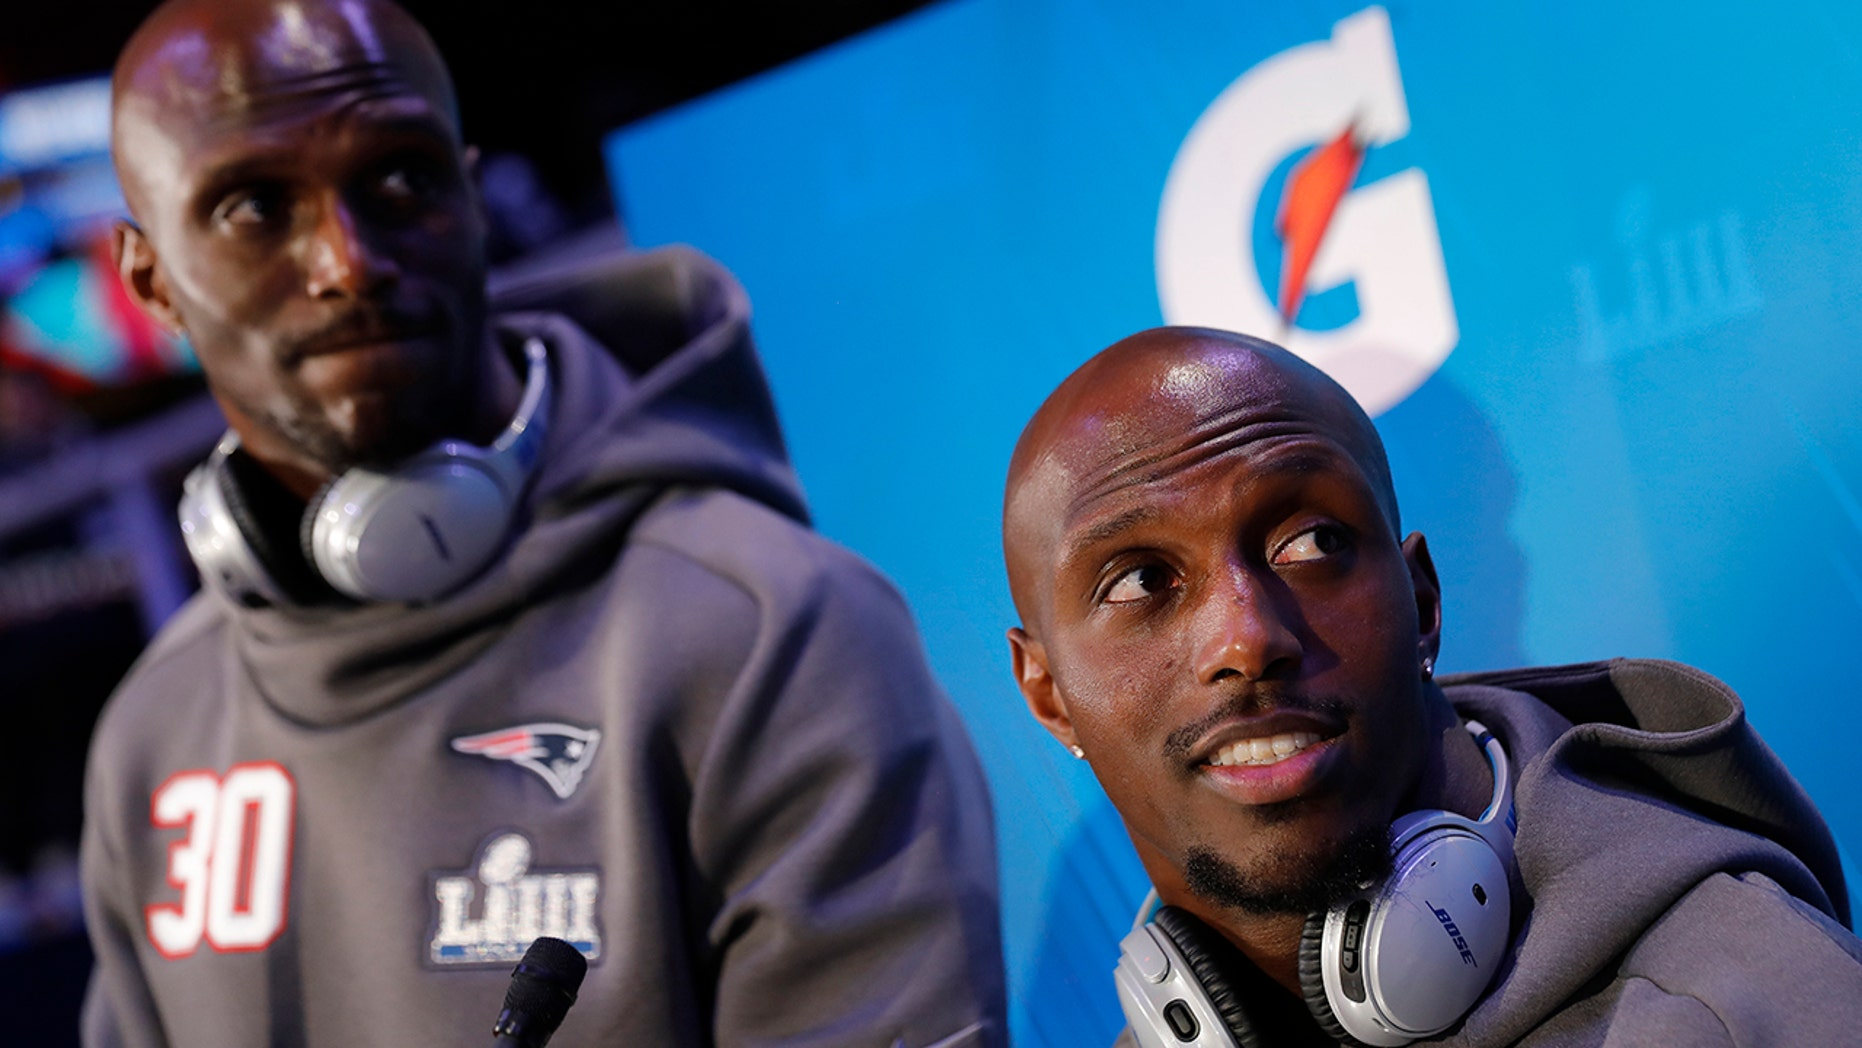 New England Patriots' Jason McCourty and Devin McCourty answer questions during Opening Night for the NFL Super Bowl 53 football game Monday, Jan. 28, 2019, in Atlanta.